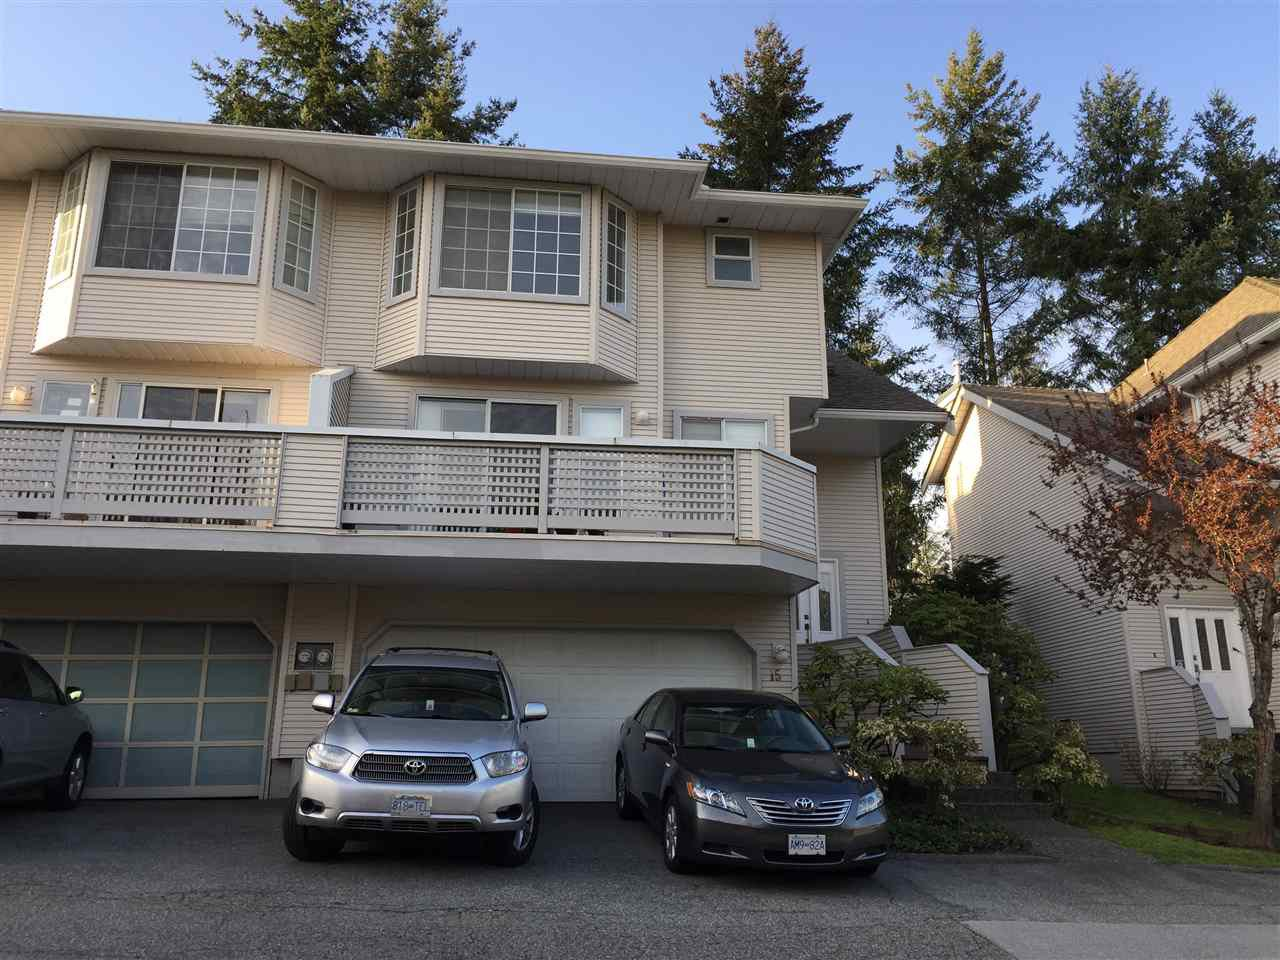 Main Photo: 15 1216 JOHNSON STREET in Coquitlam: Scott Creek Townhouse for sale : MLS®# R2259237